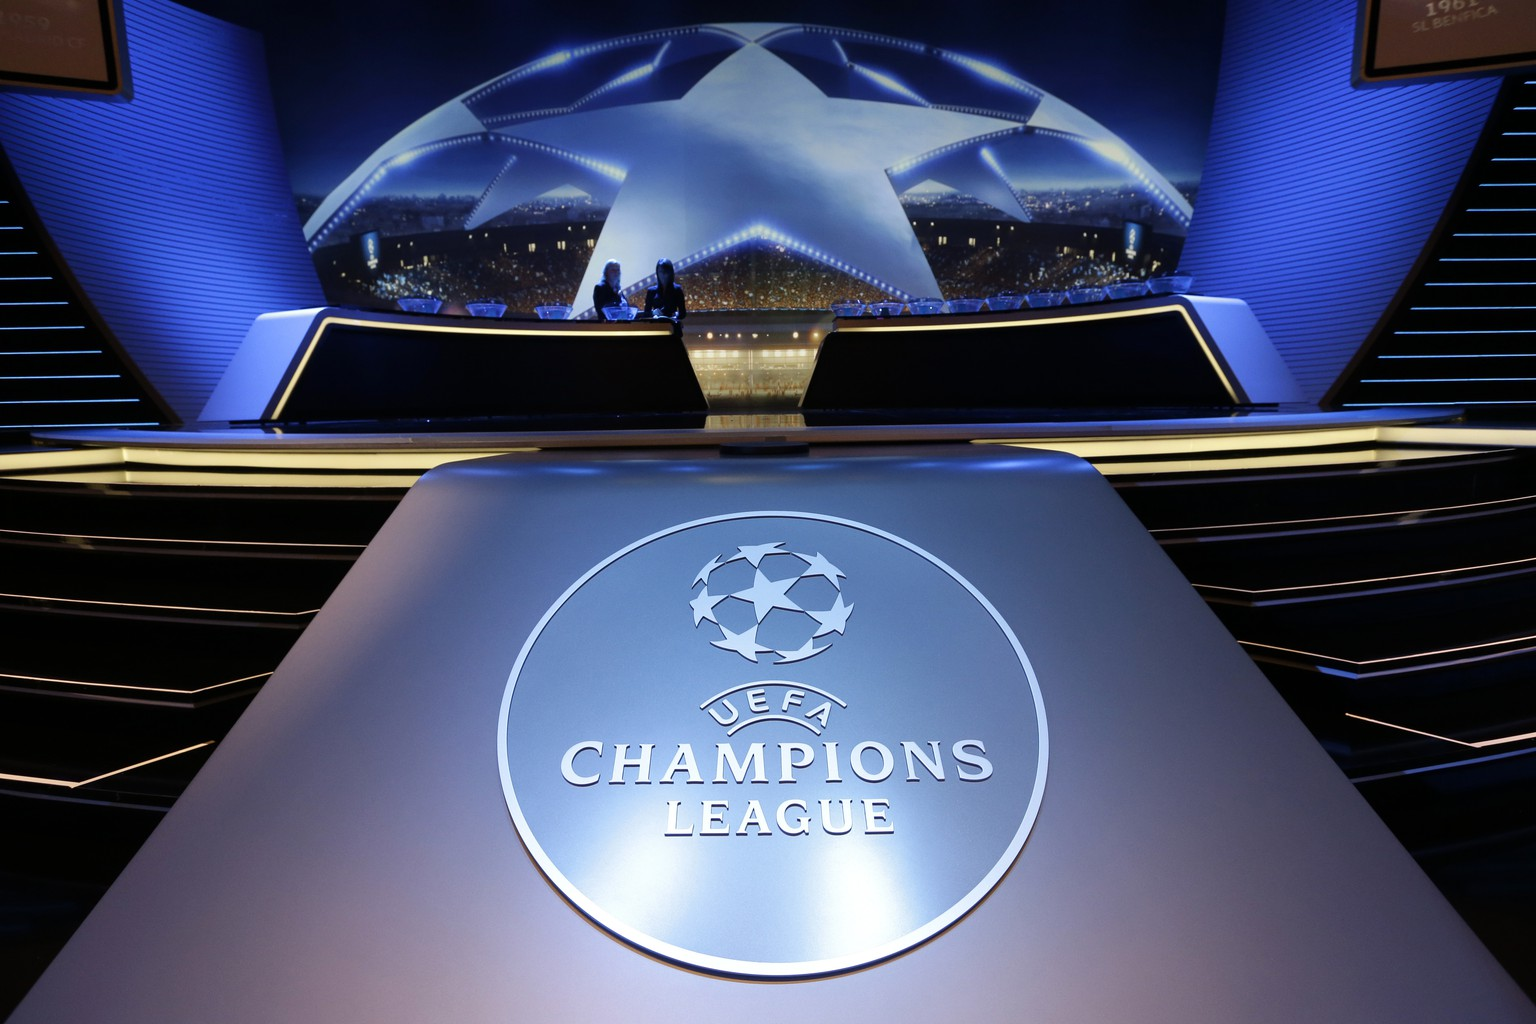 Logo of the UEFA Champions League is dislayed during the UEFA Champions League draw at the Grimaldi Forum, in Monaco, Thursday, Aug. 25, 2016. (AP Photo/Claude Paris)